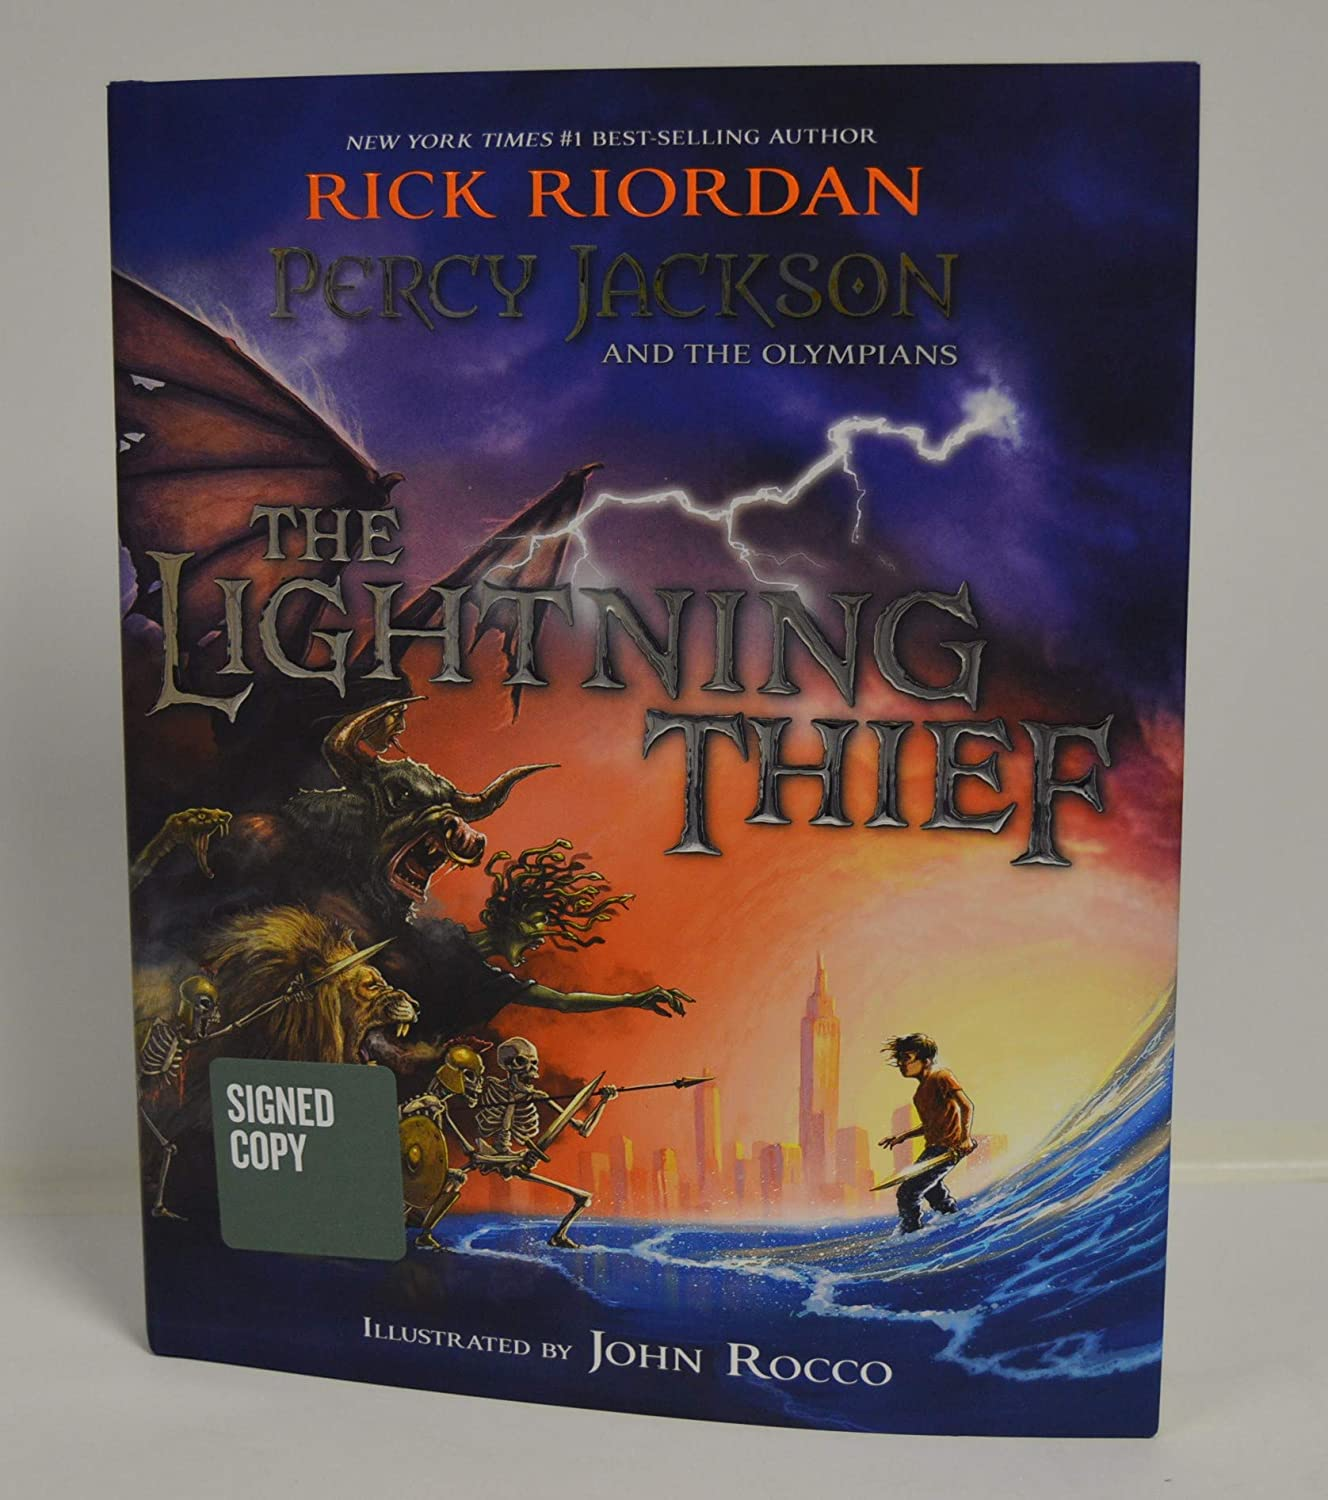 RICK RIORDAN signed Percy Jackson and the Olympians The Lightning Thief Illustrated Edition (Hardcover) Book FIRST EDITION (Exclusive Apollo's Puzzle Collection Inside)